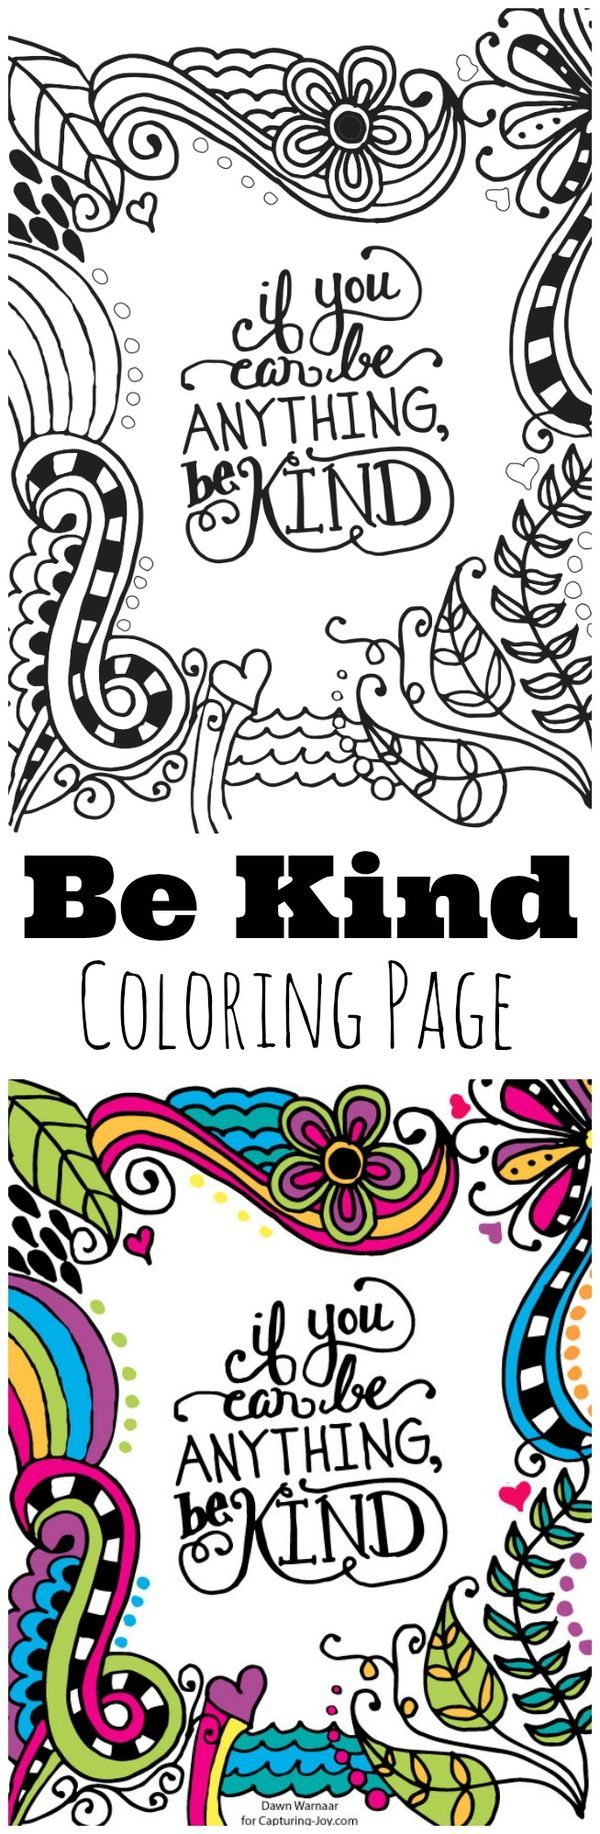 R truth coloring pages - Be Kind Kids Coloring Page Great For Kids To Help Encourage Kindness Hang On